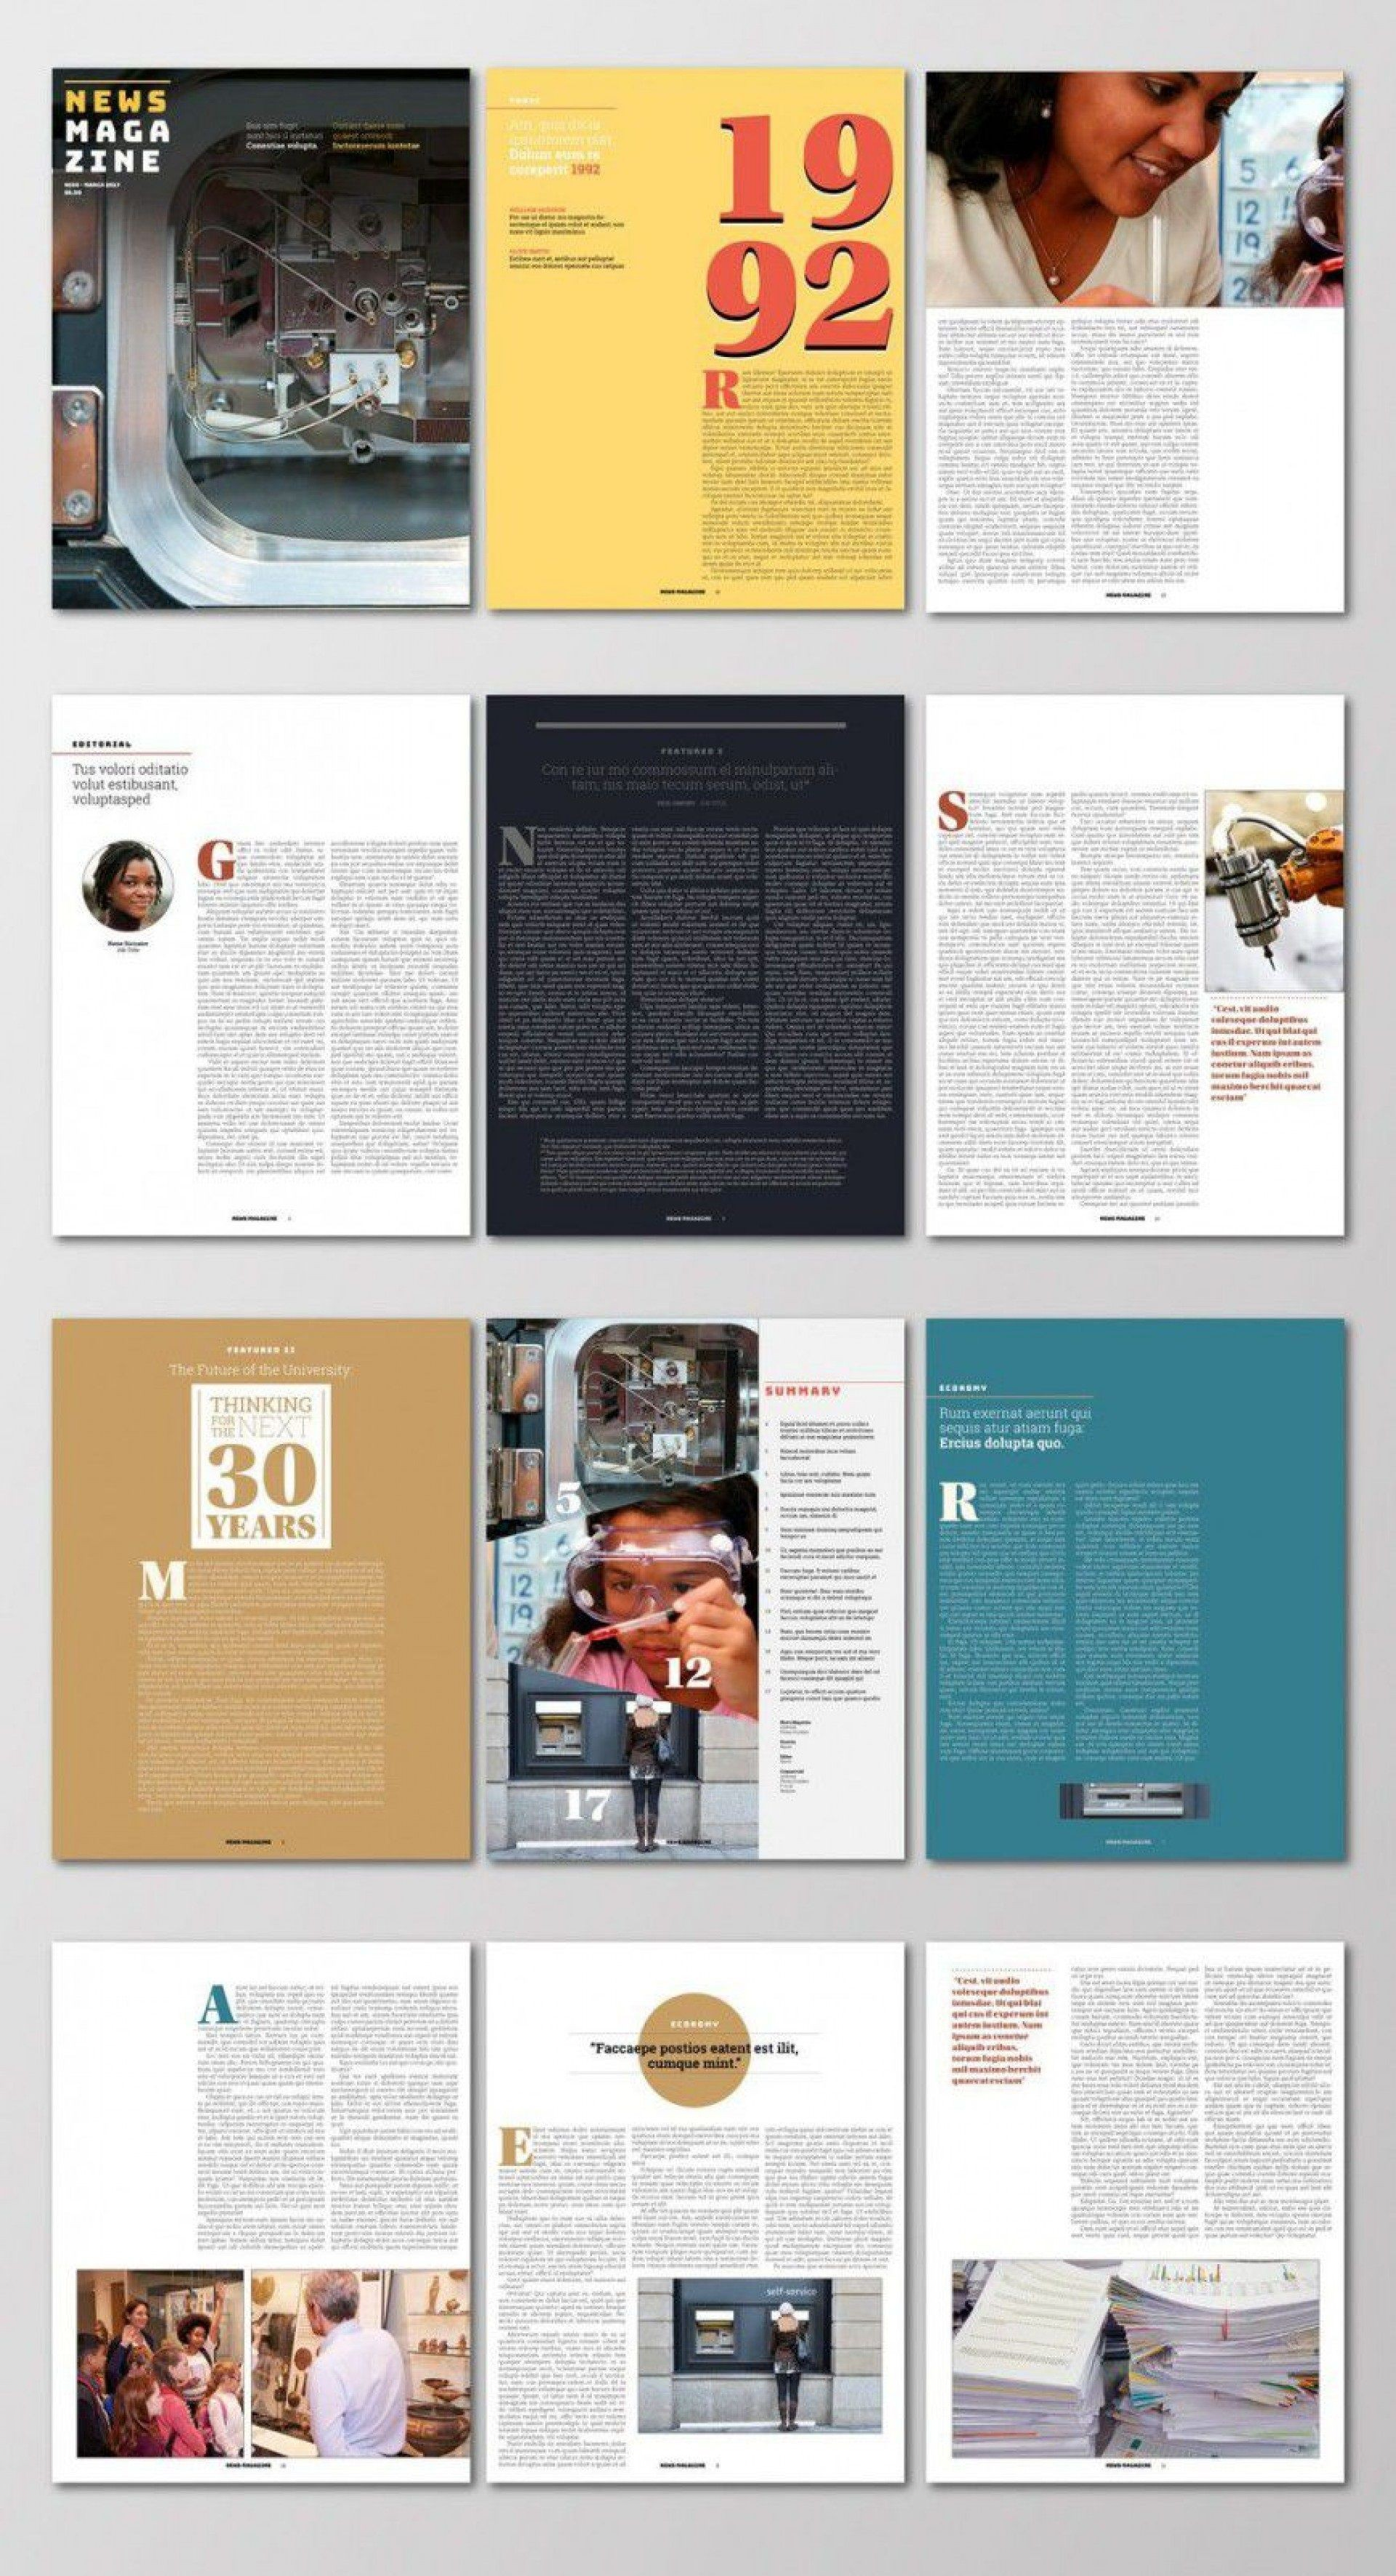 001 Remarkable School Magazine Layout Template Free Download Highest Quality 1920